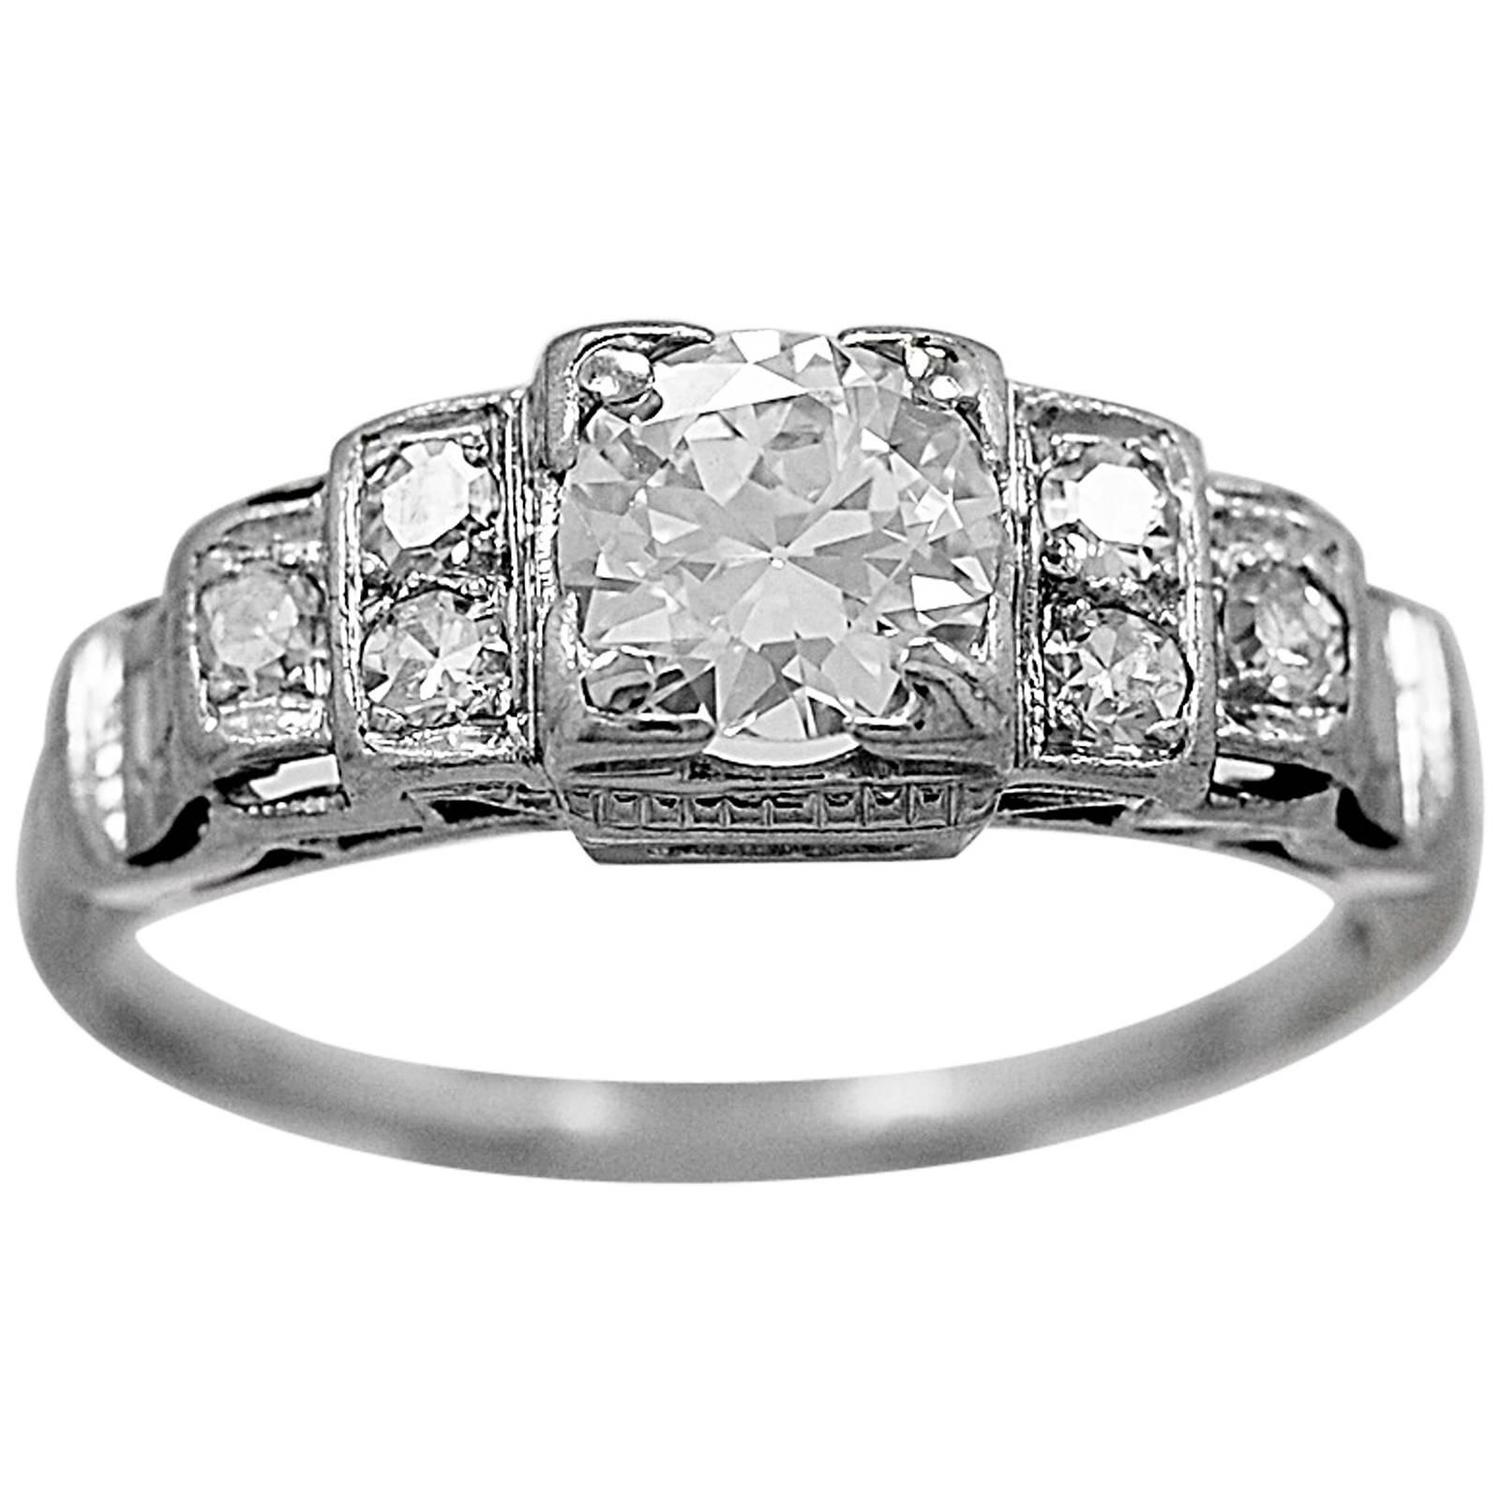 Art Deco 55 Carat Diamond Platinum Engagement Ring For Sale at